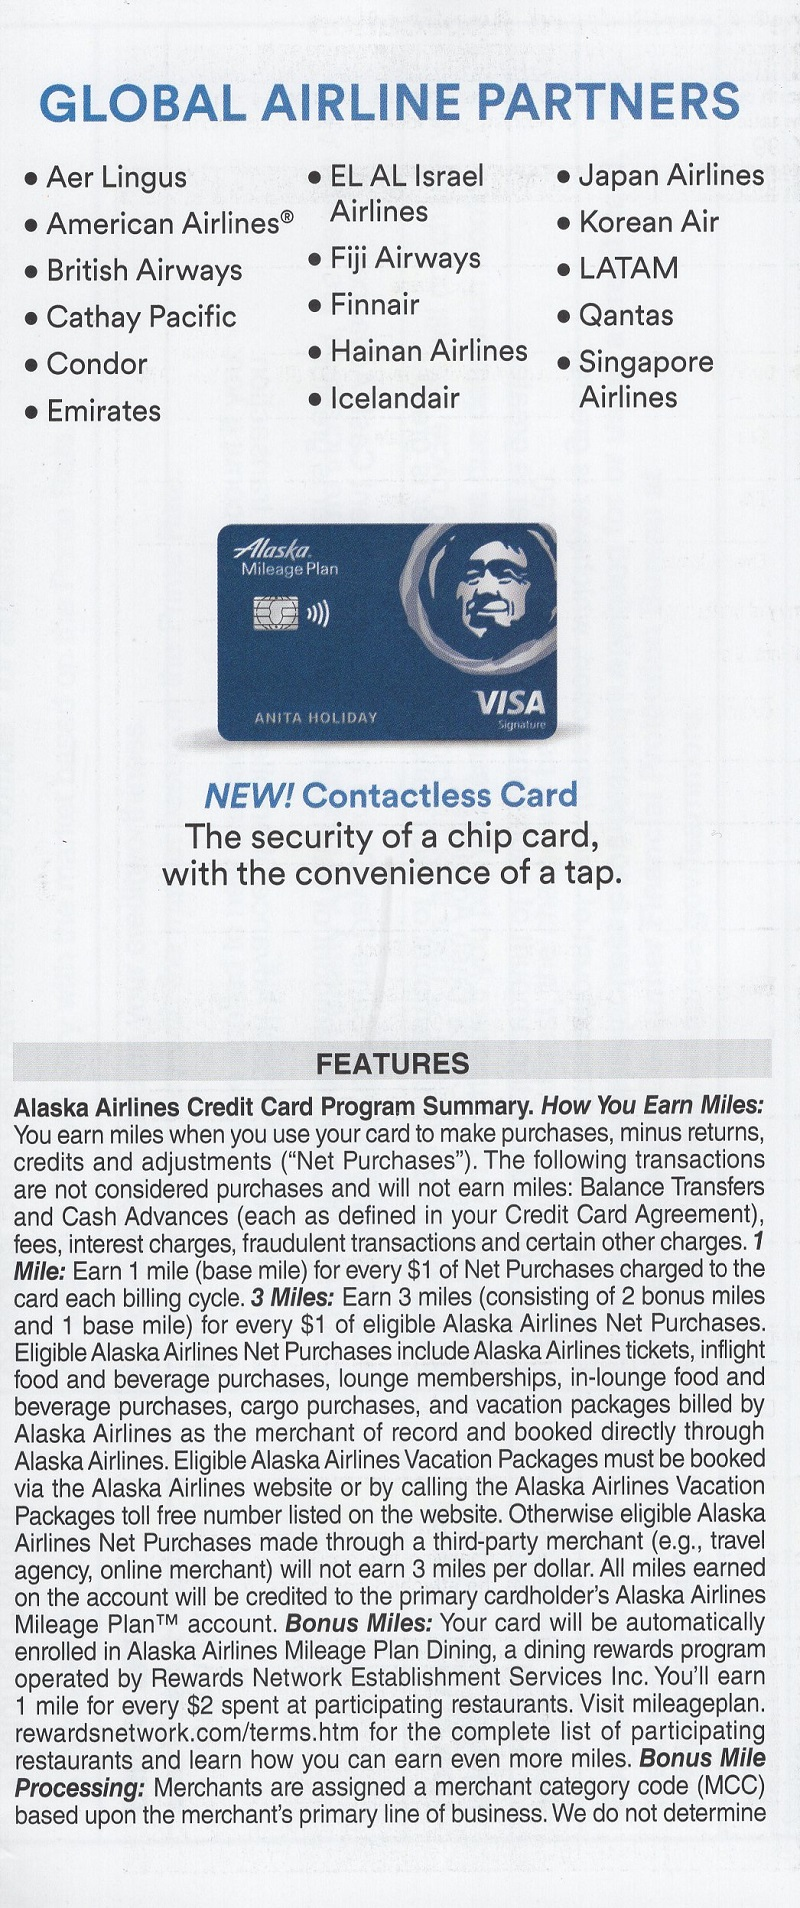 Alaska Airlines Affinity Cards brochure thumbnail